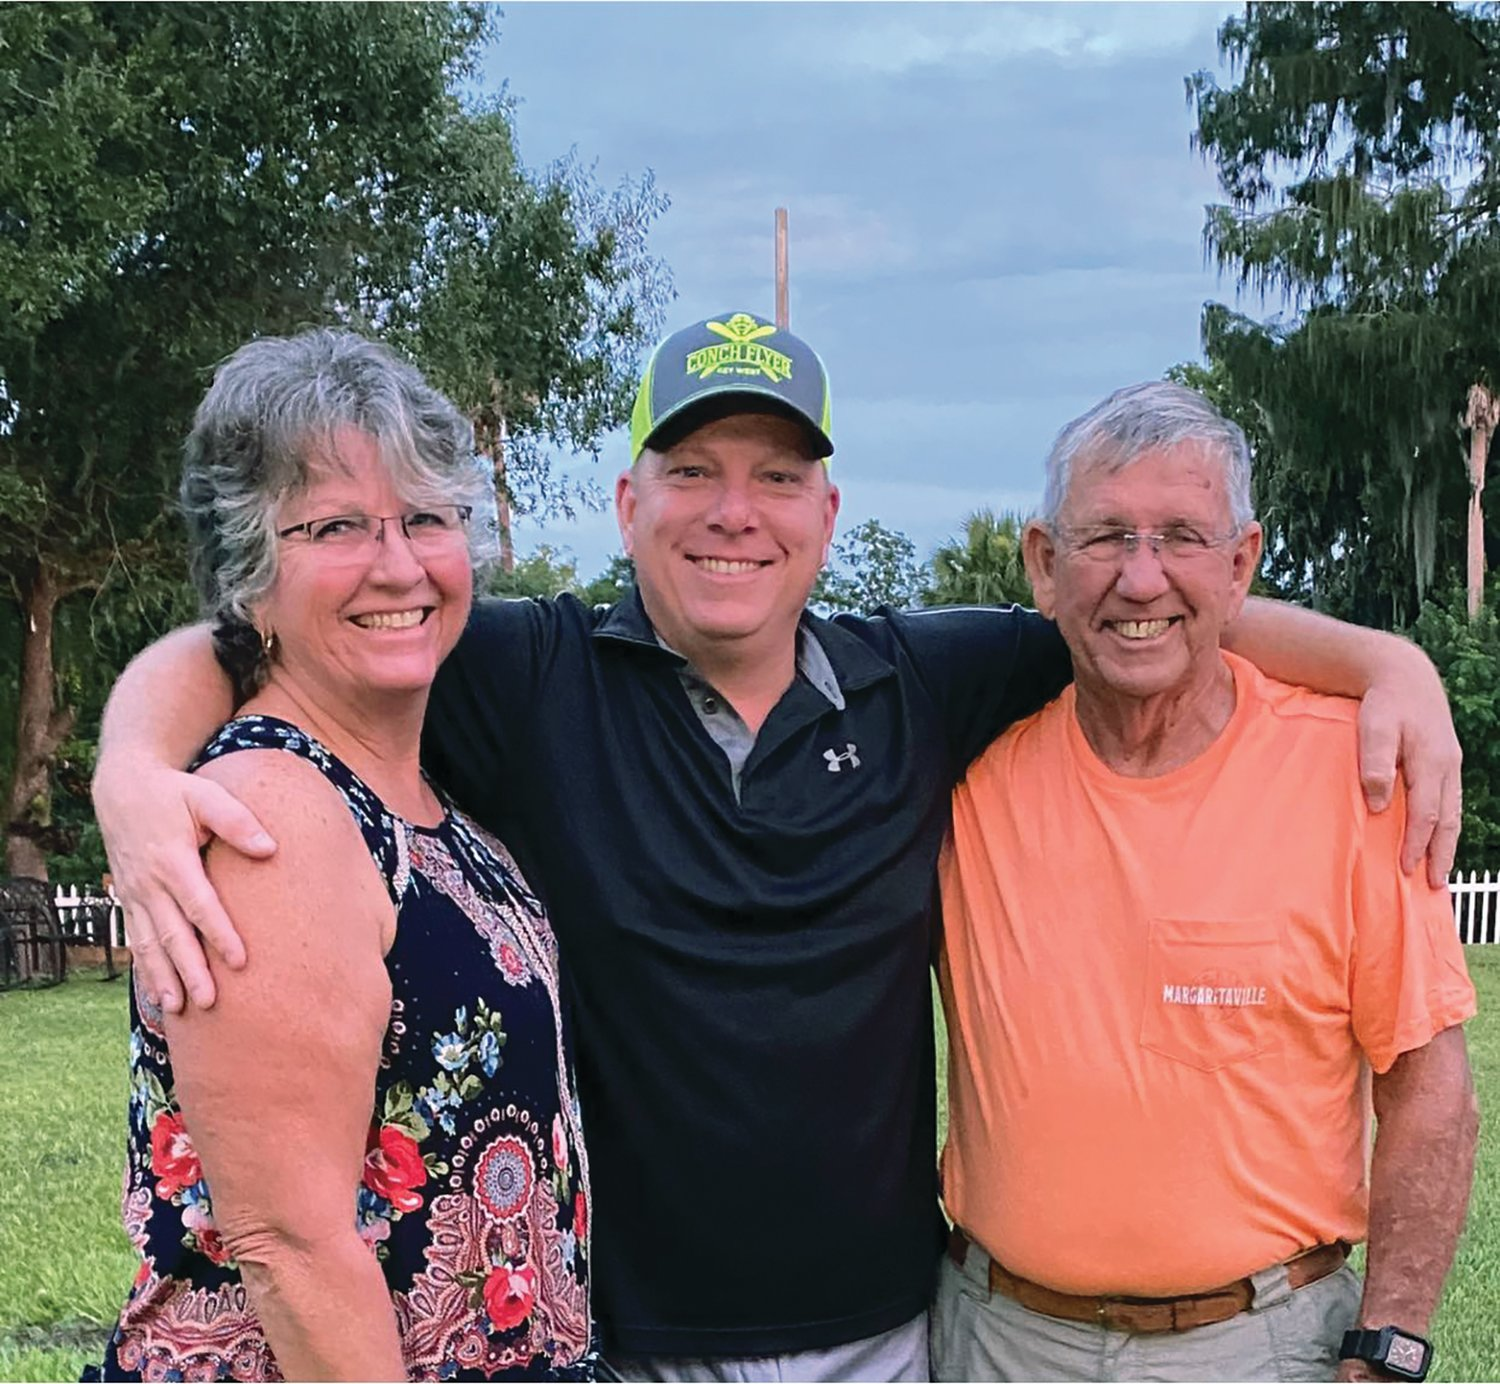 Gary Walker's father, Don Walker, and stepmother Holly Walker also live in Okeechobee and enjoy visiting with Walker (center) when he is in town.